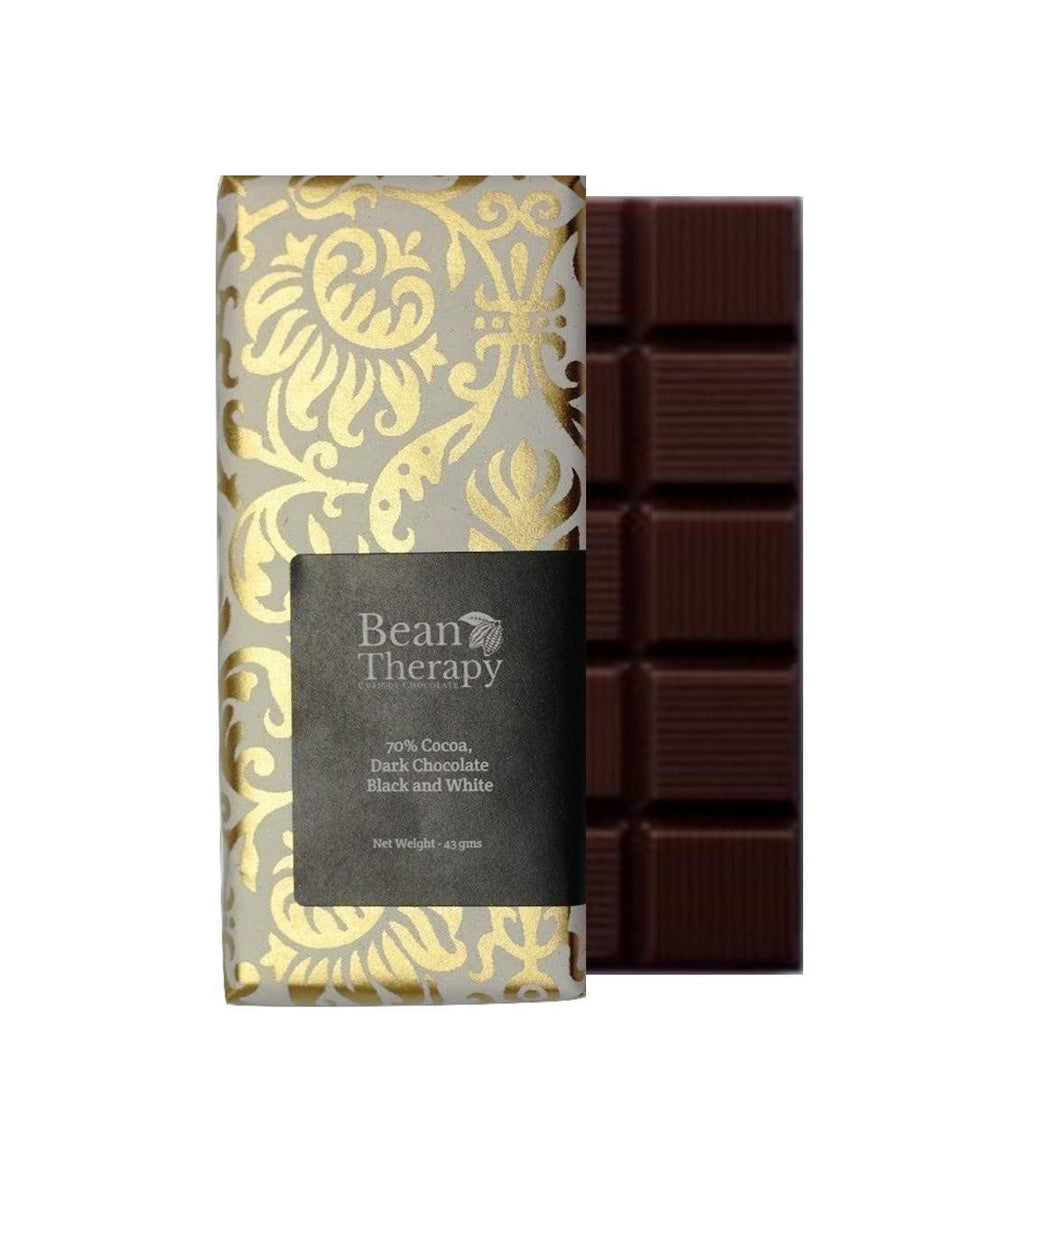 Black and White - Bean Therapy Chocolate